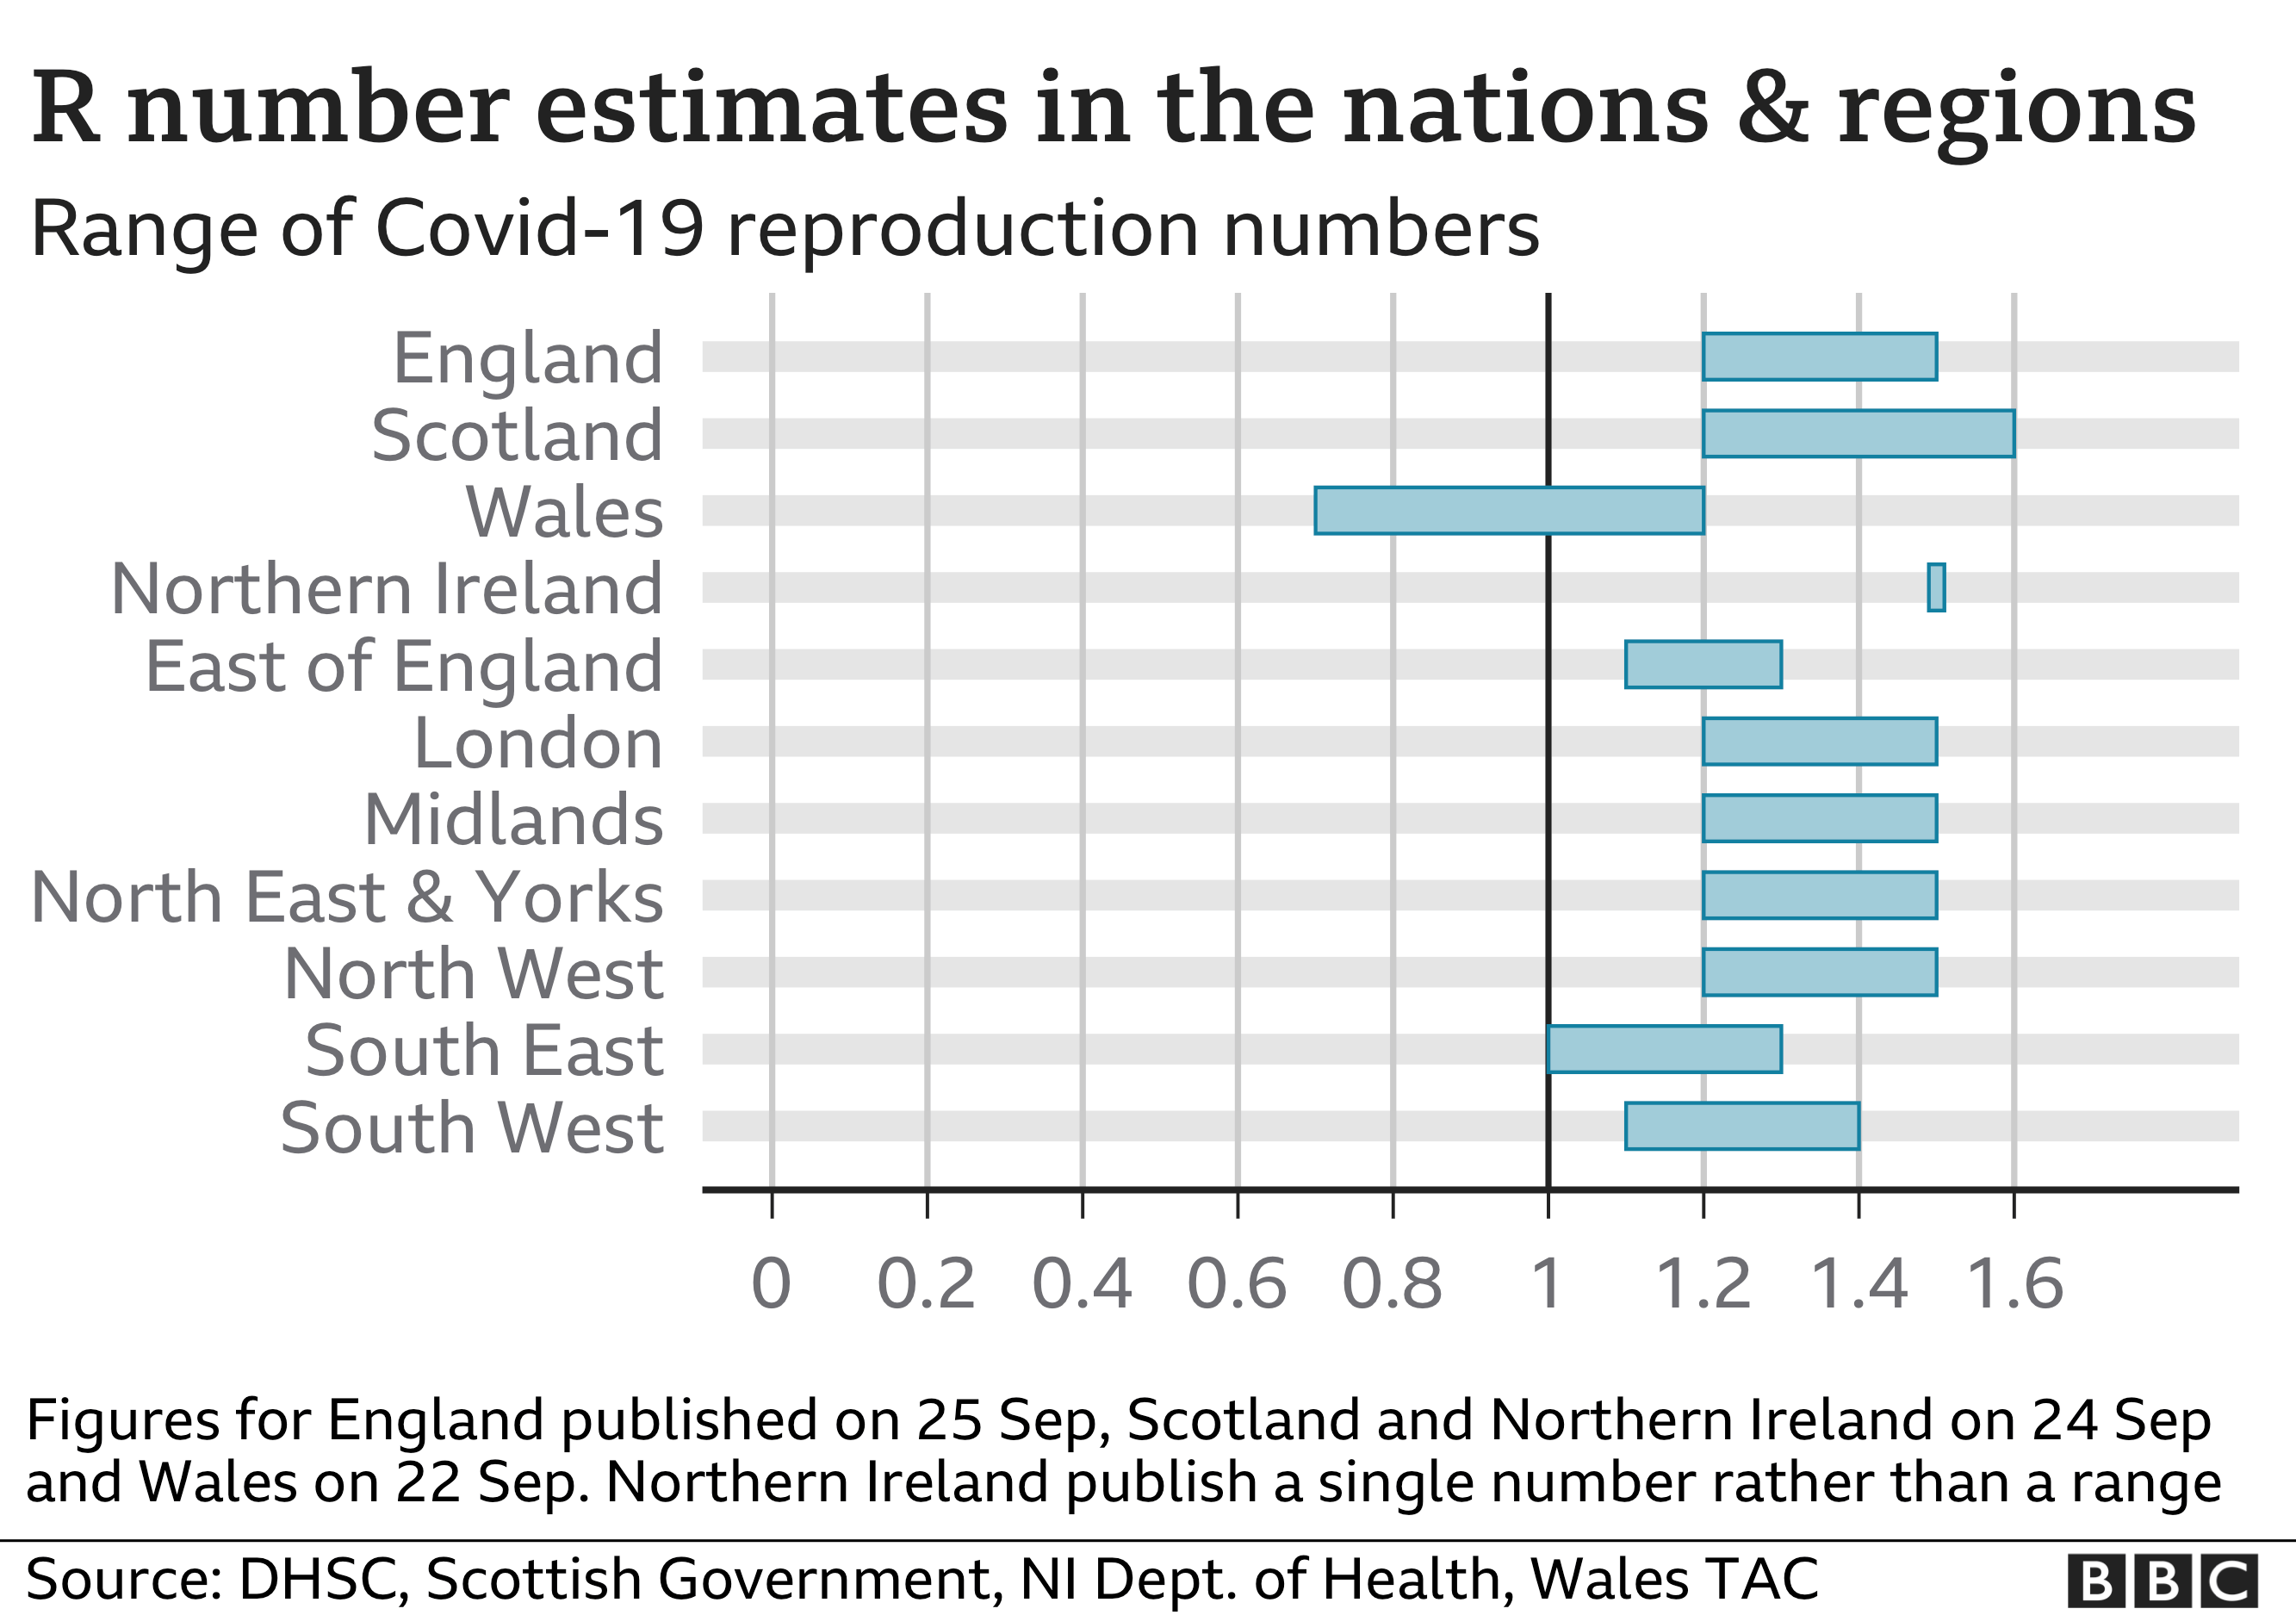 R number estimates in nations and regions